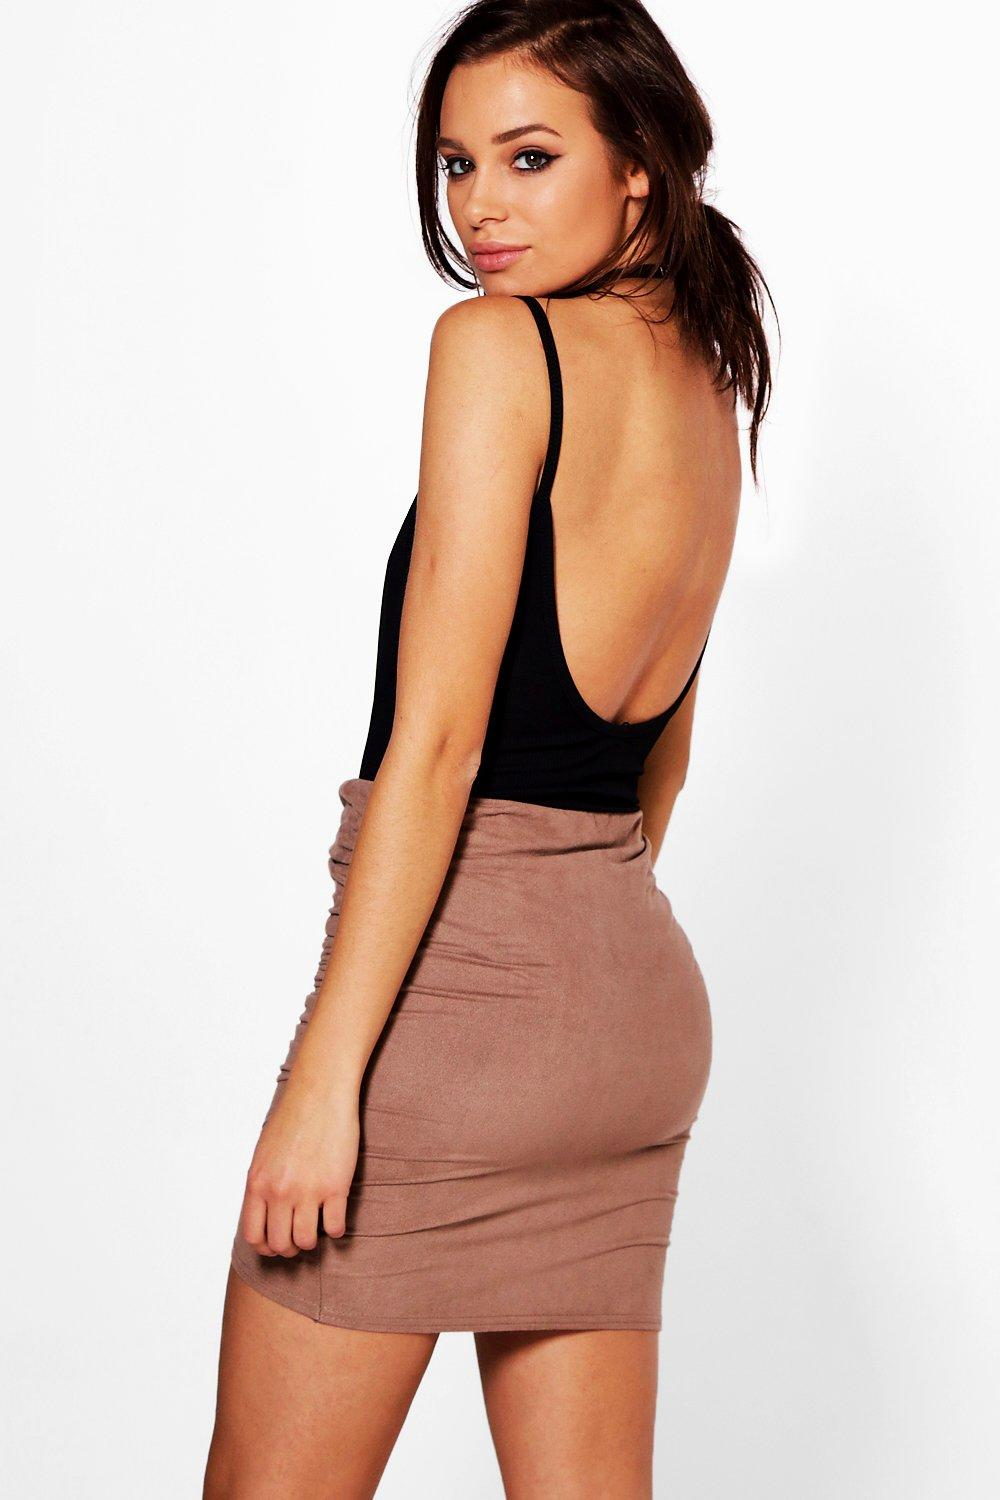 A petite skirt adds sophistication to any outfit. Try a knee-length pencil skirt and pair of women's pumps for an important interview or work meeting. The hemline falls at just the right length to flatter the silhouette, so you'll feel even more confident.